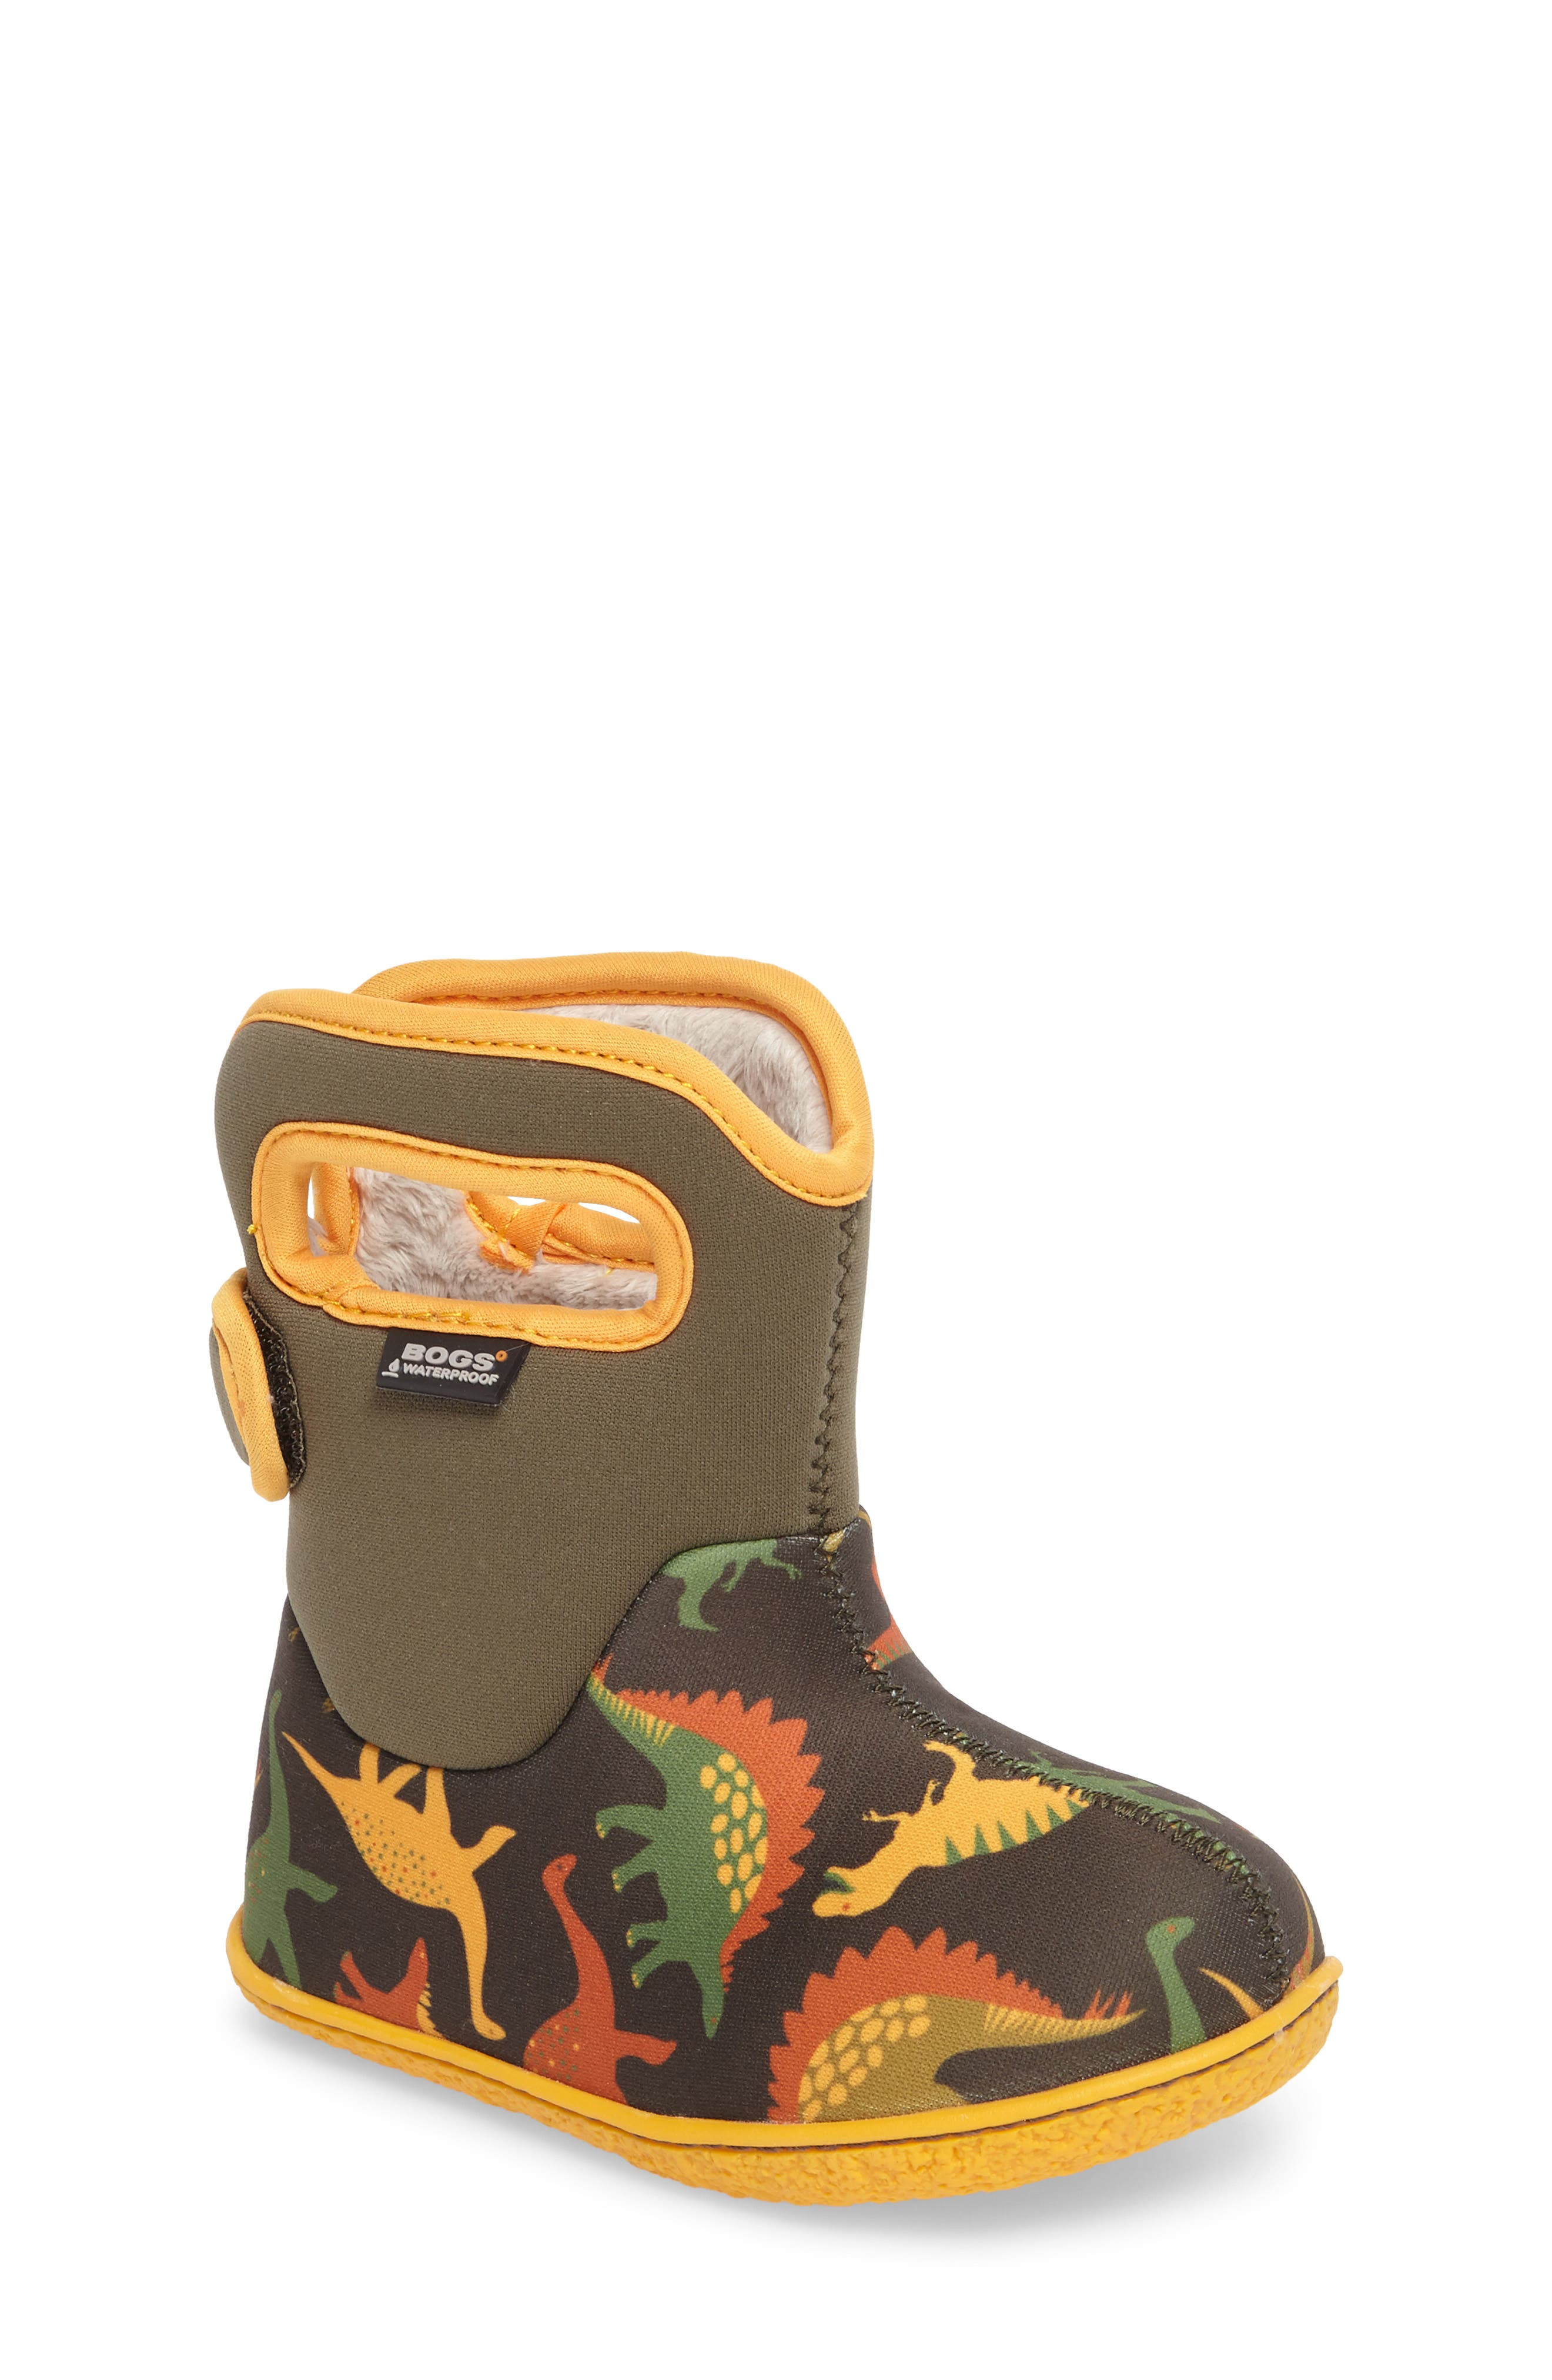 Alternate Image 1 Selected - Bogs Baby Bog Classic Dino Insulated Waterproof Boot (Baby, Walker & Toddler)